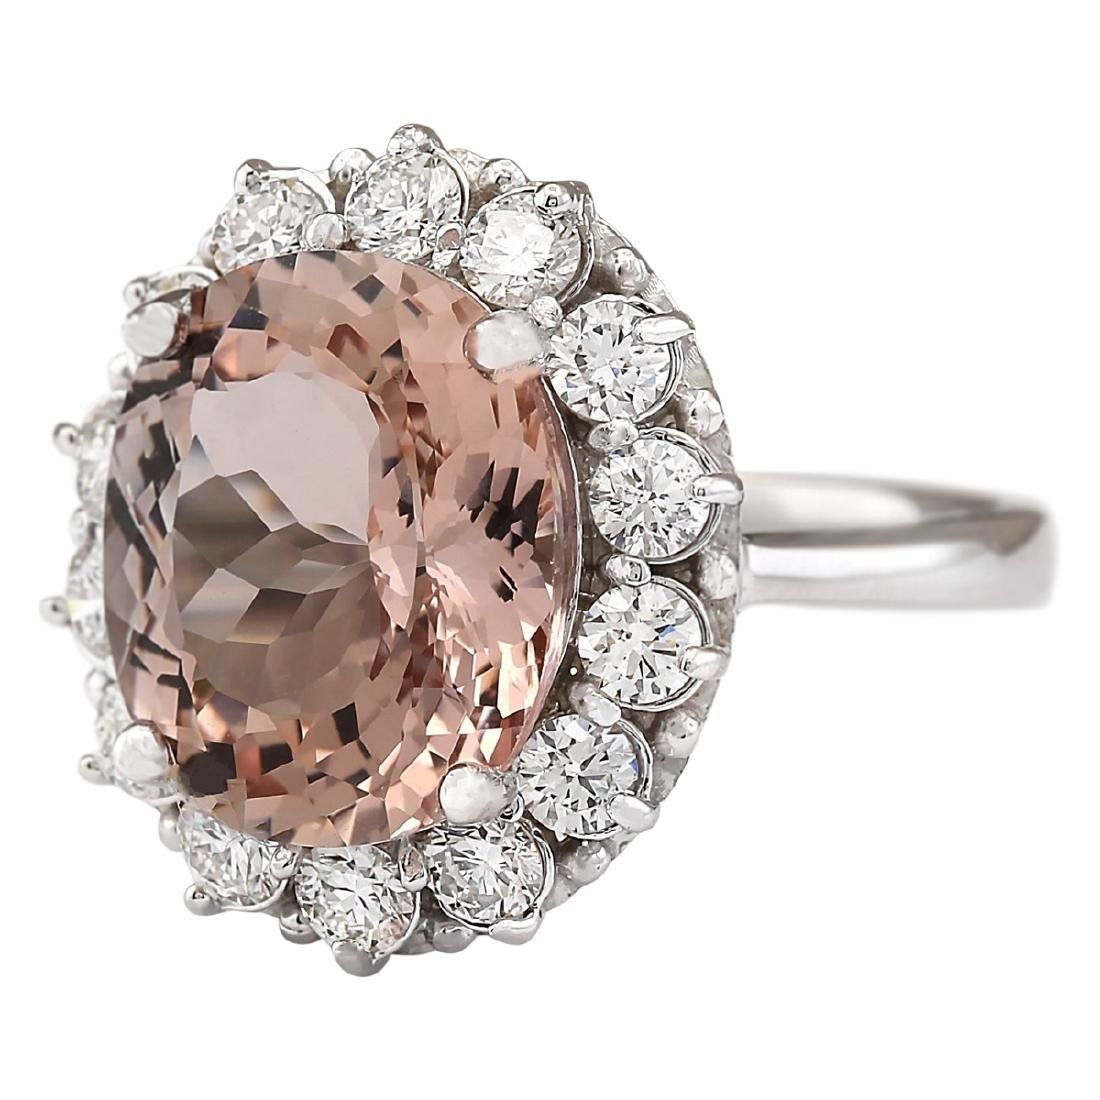 7.04 CTW Natural Morganite And Diamond Ring In 18K - 2